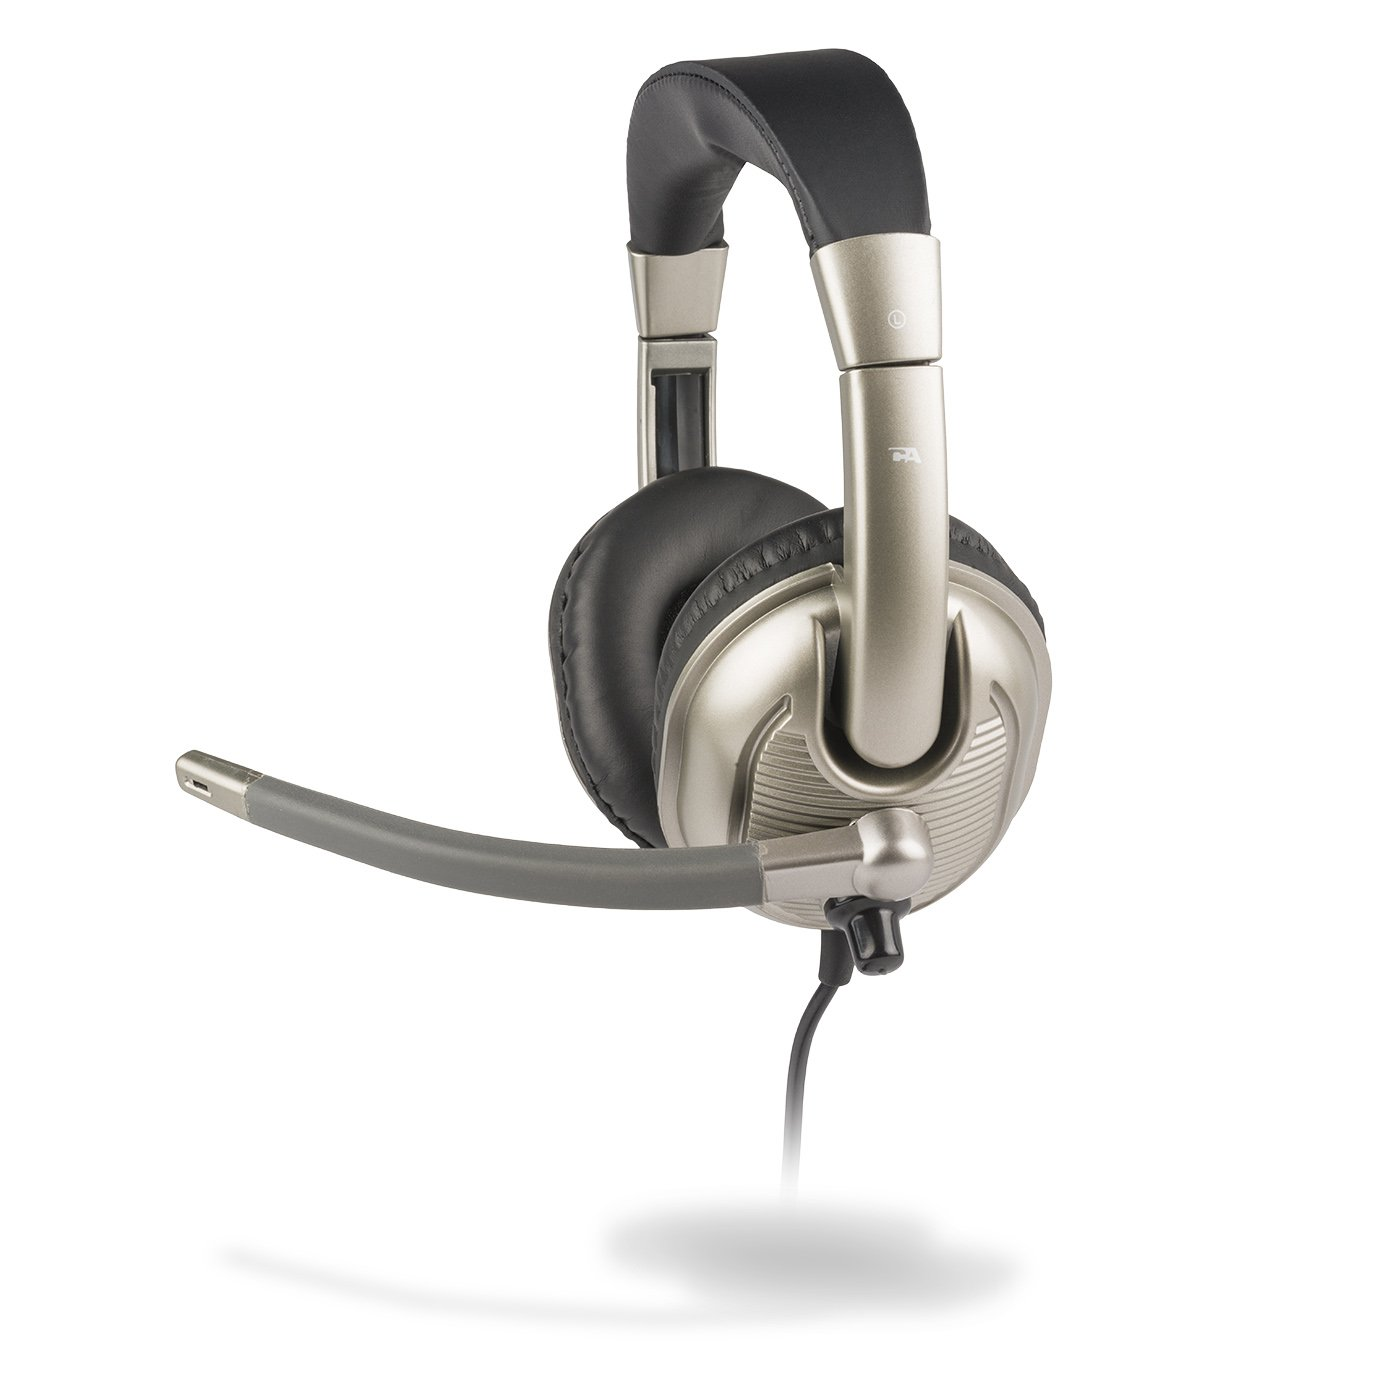 Cyber Acoustics Child Stereo Headset, a kid sized headphone with microphone, great for K12 School Classroom and Education (AC-8000)